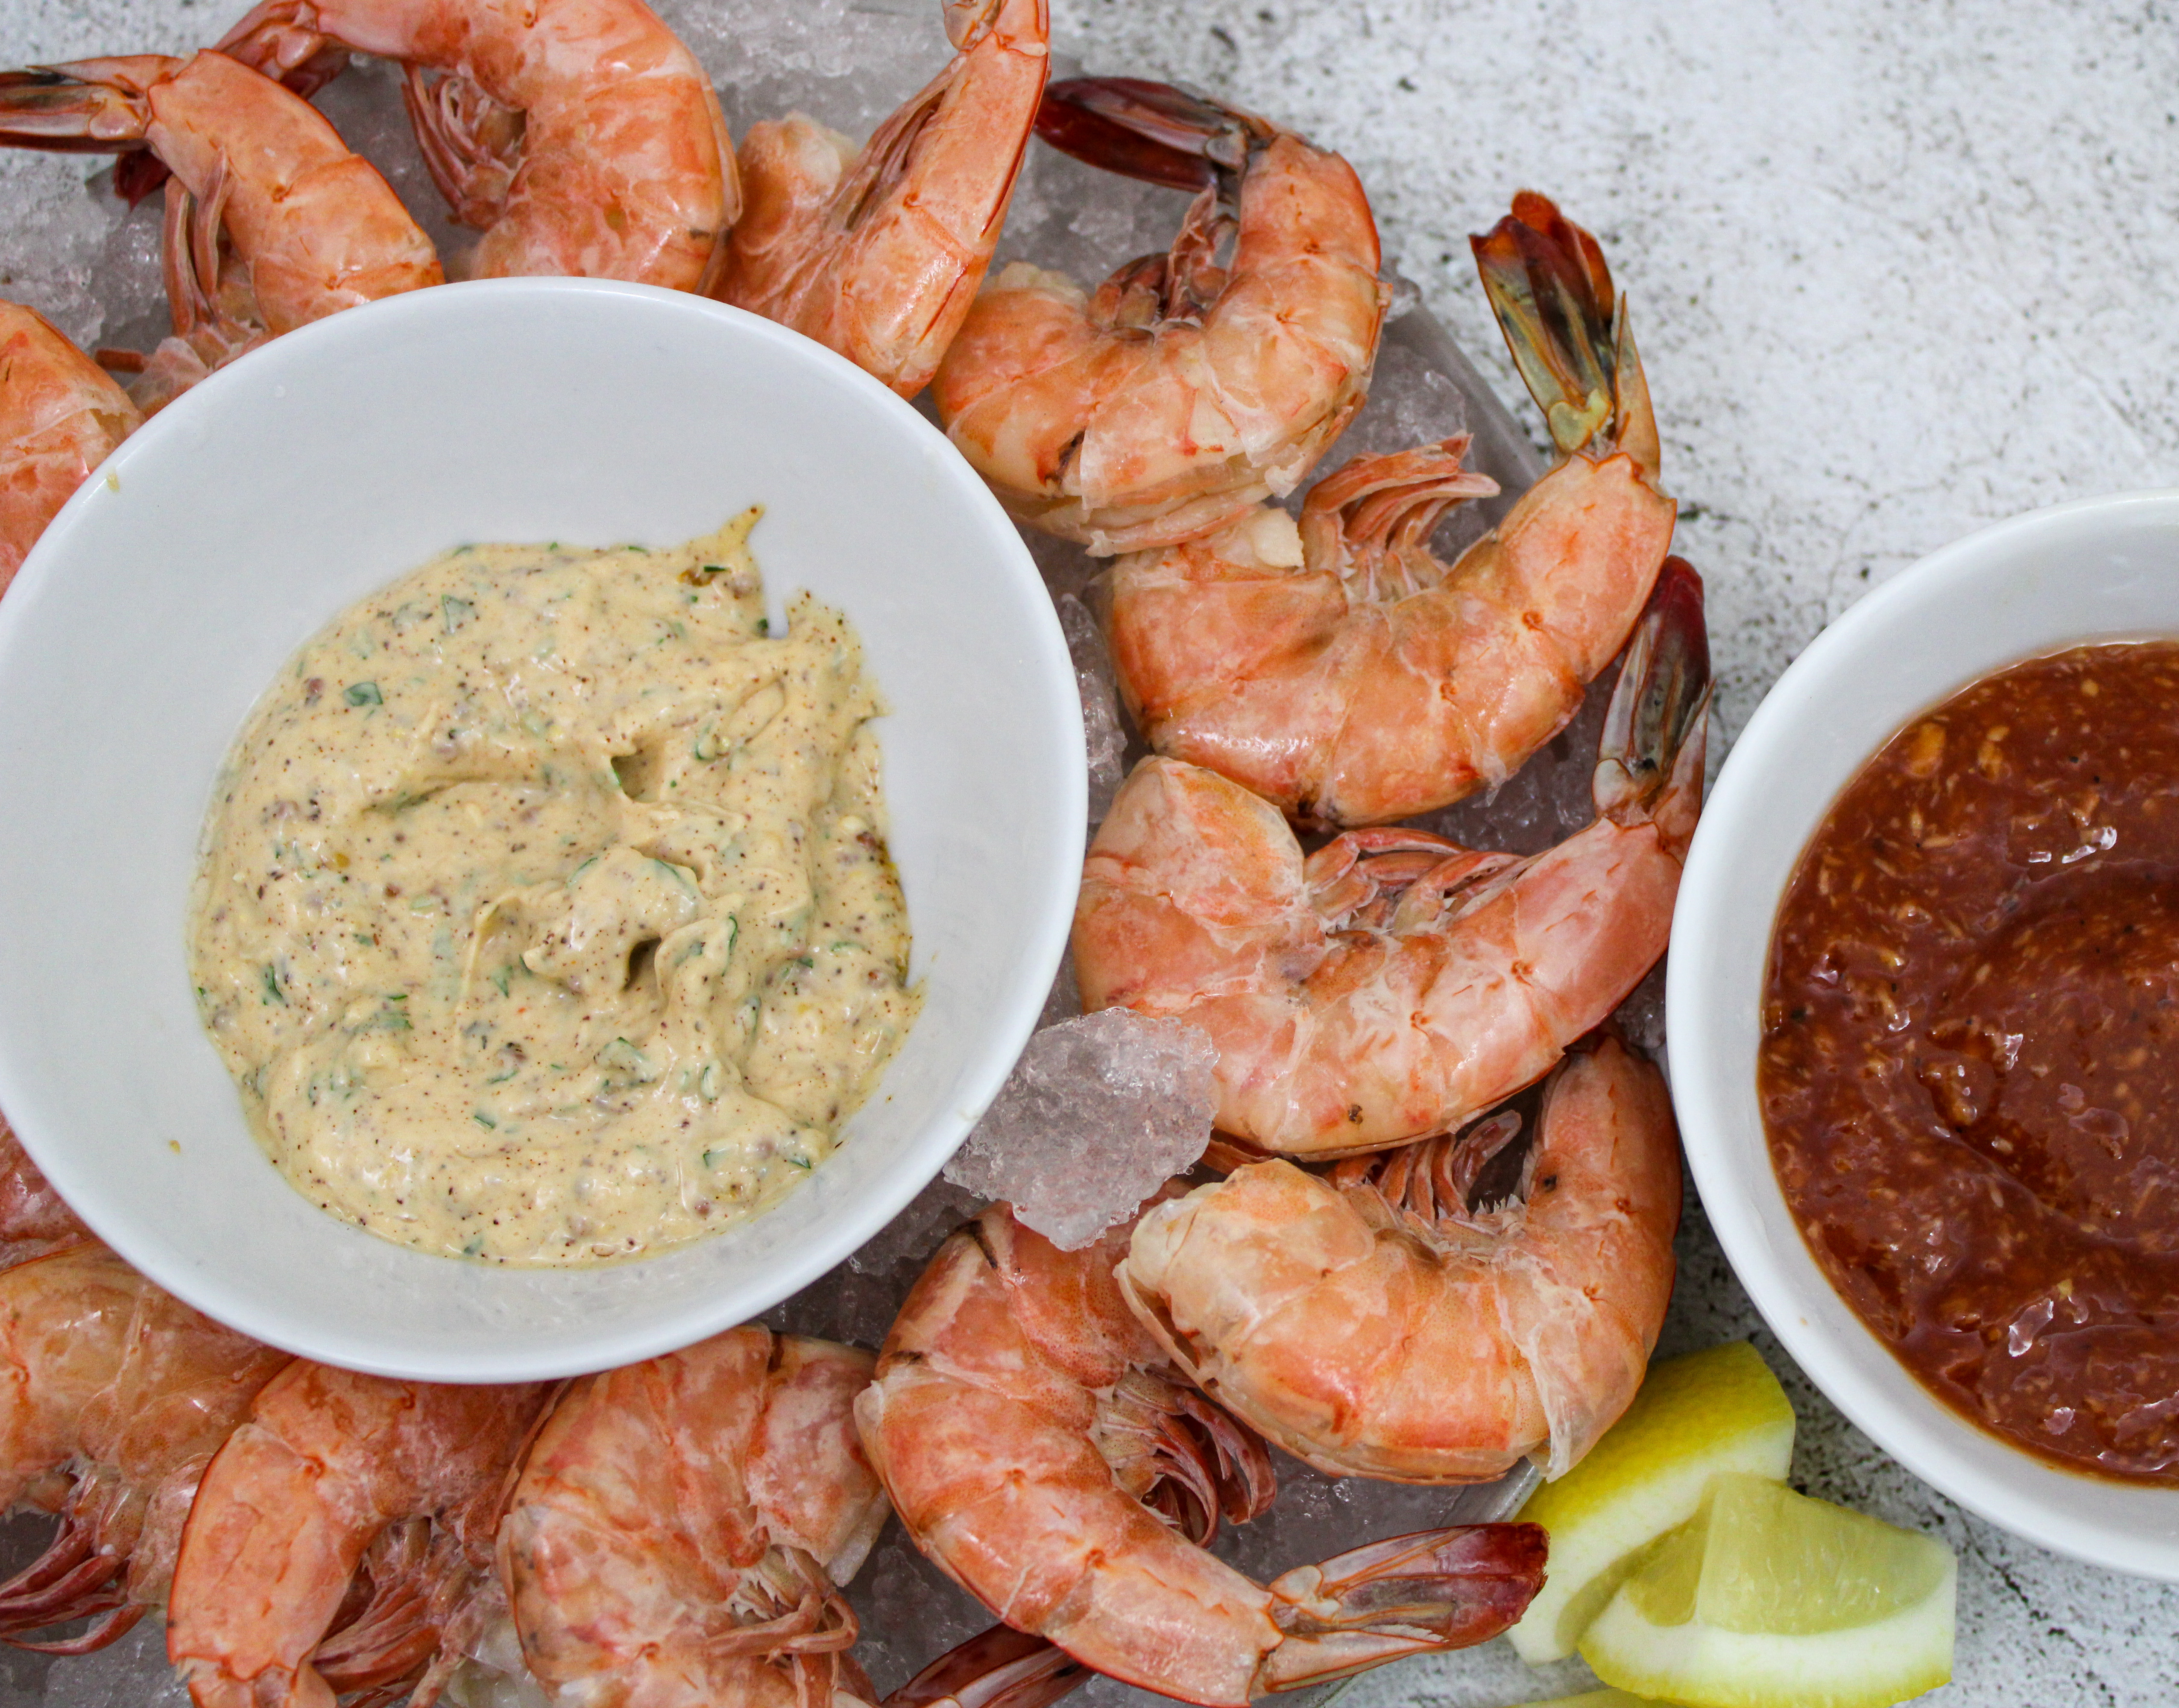 Peel & Eat Shrimp + Remoulade and Cocktail Sauce